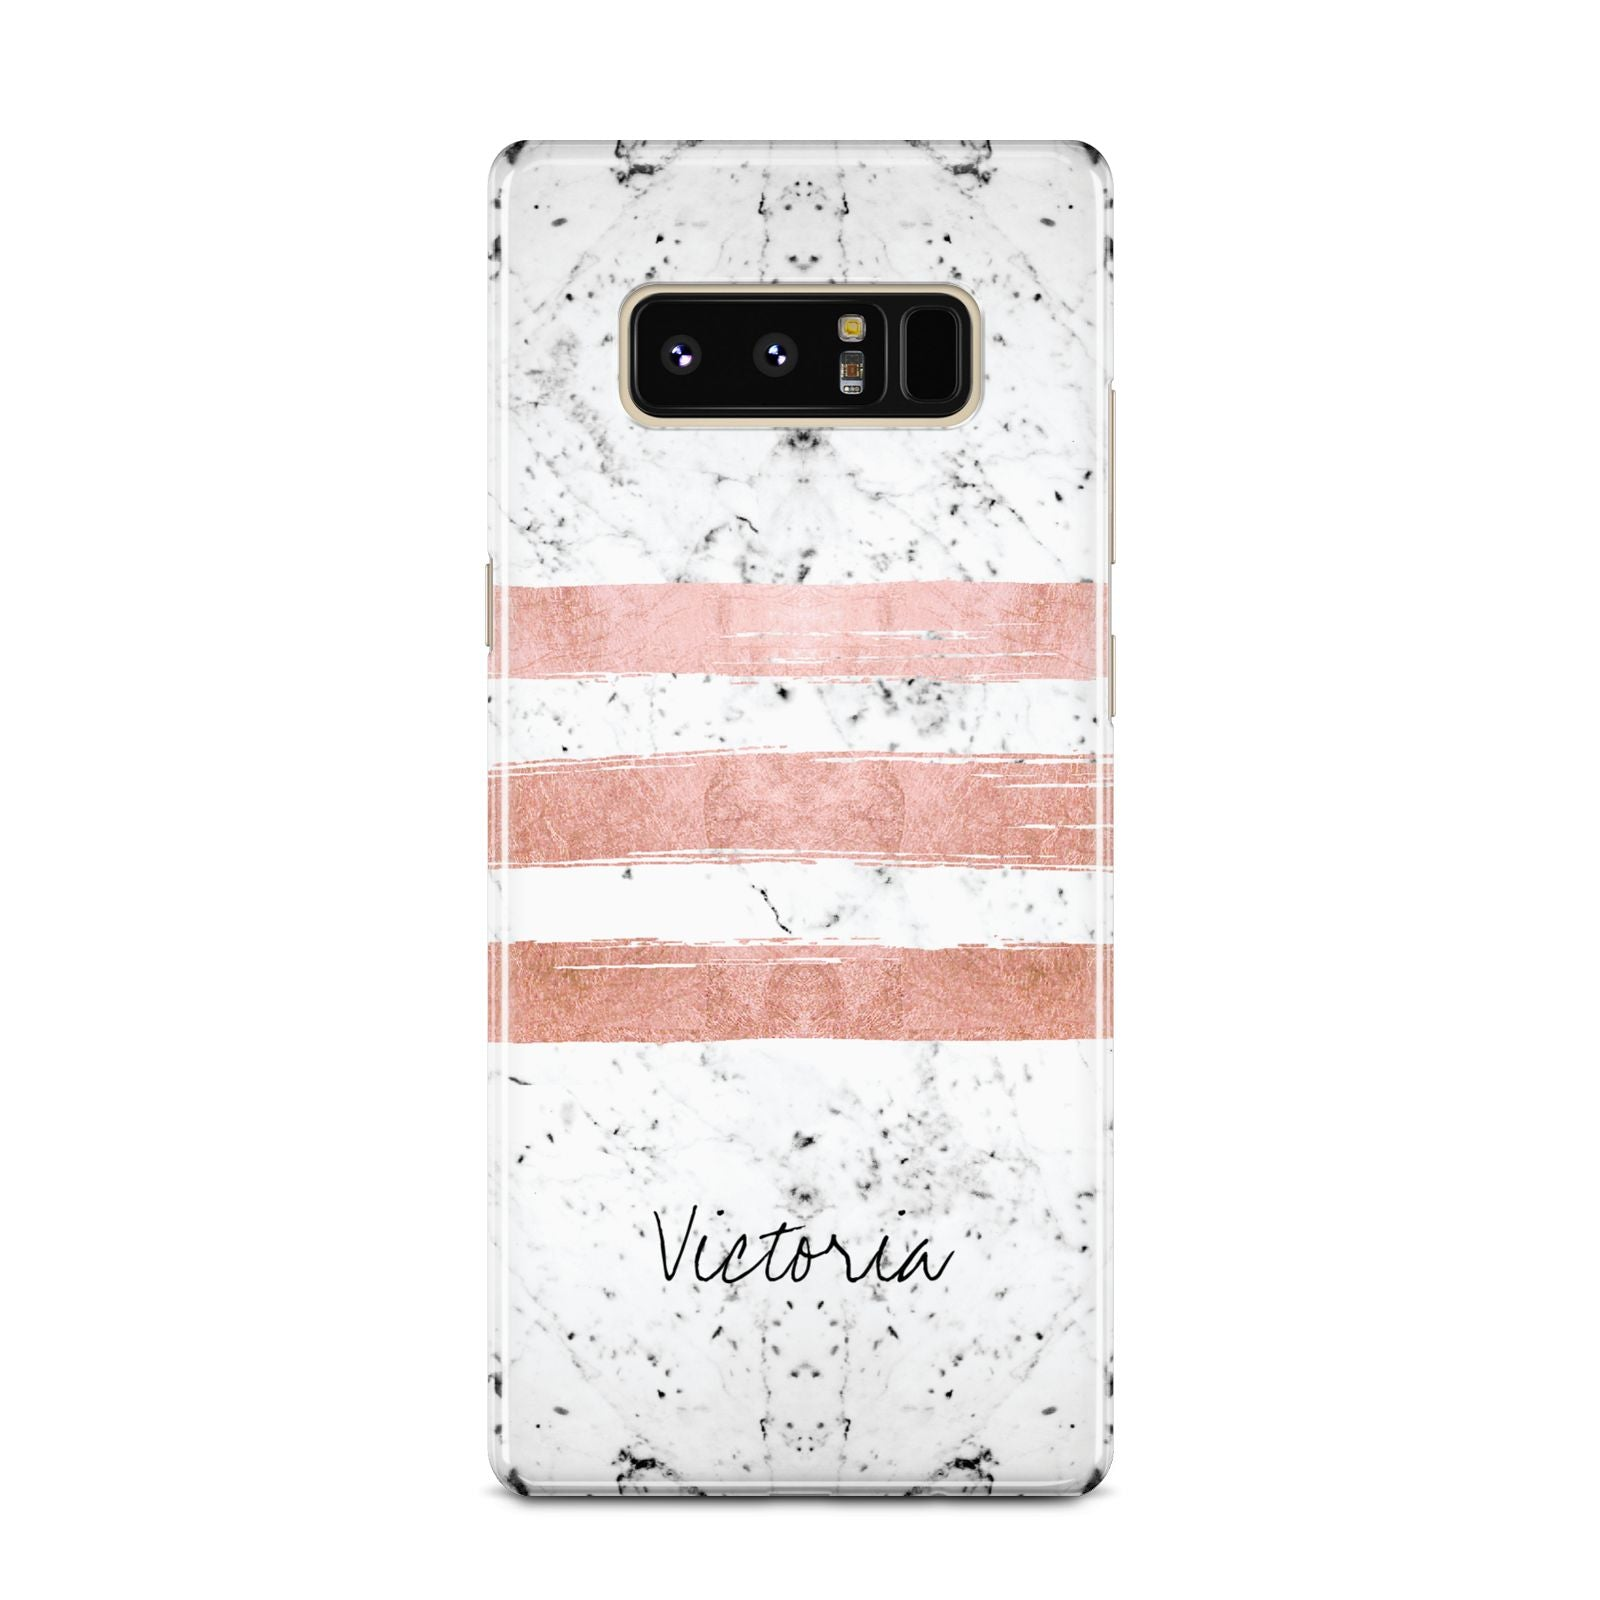 Personalised Rose Gold Brush Marble Initial Samsung Galaxy Note 8 Case